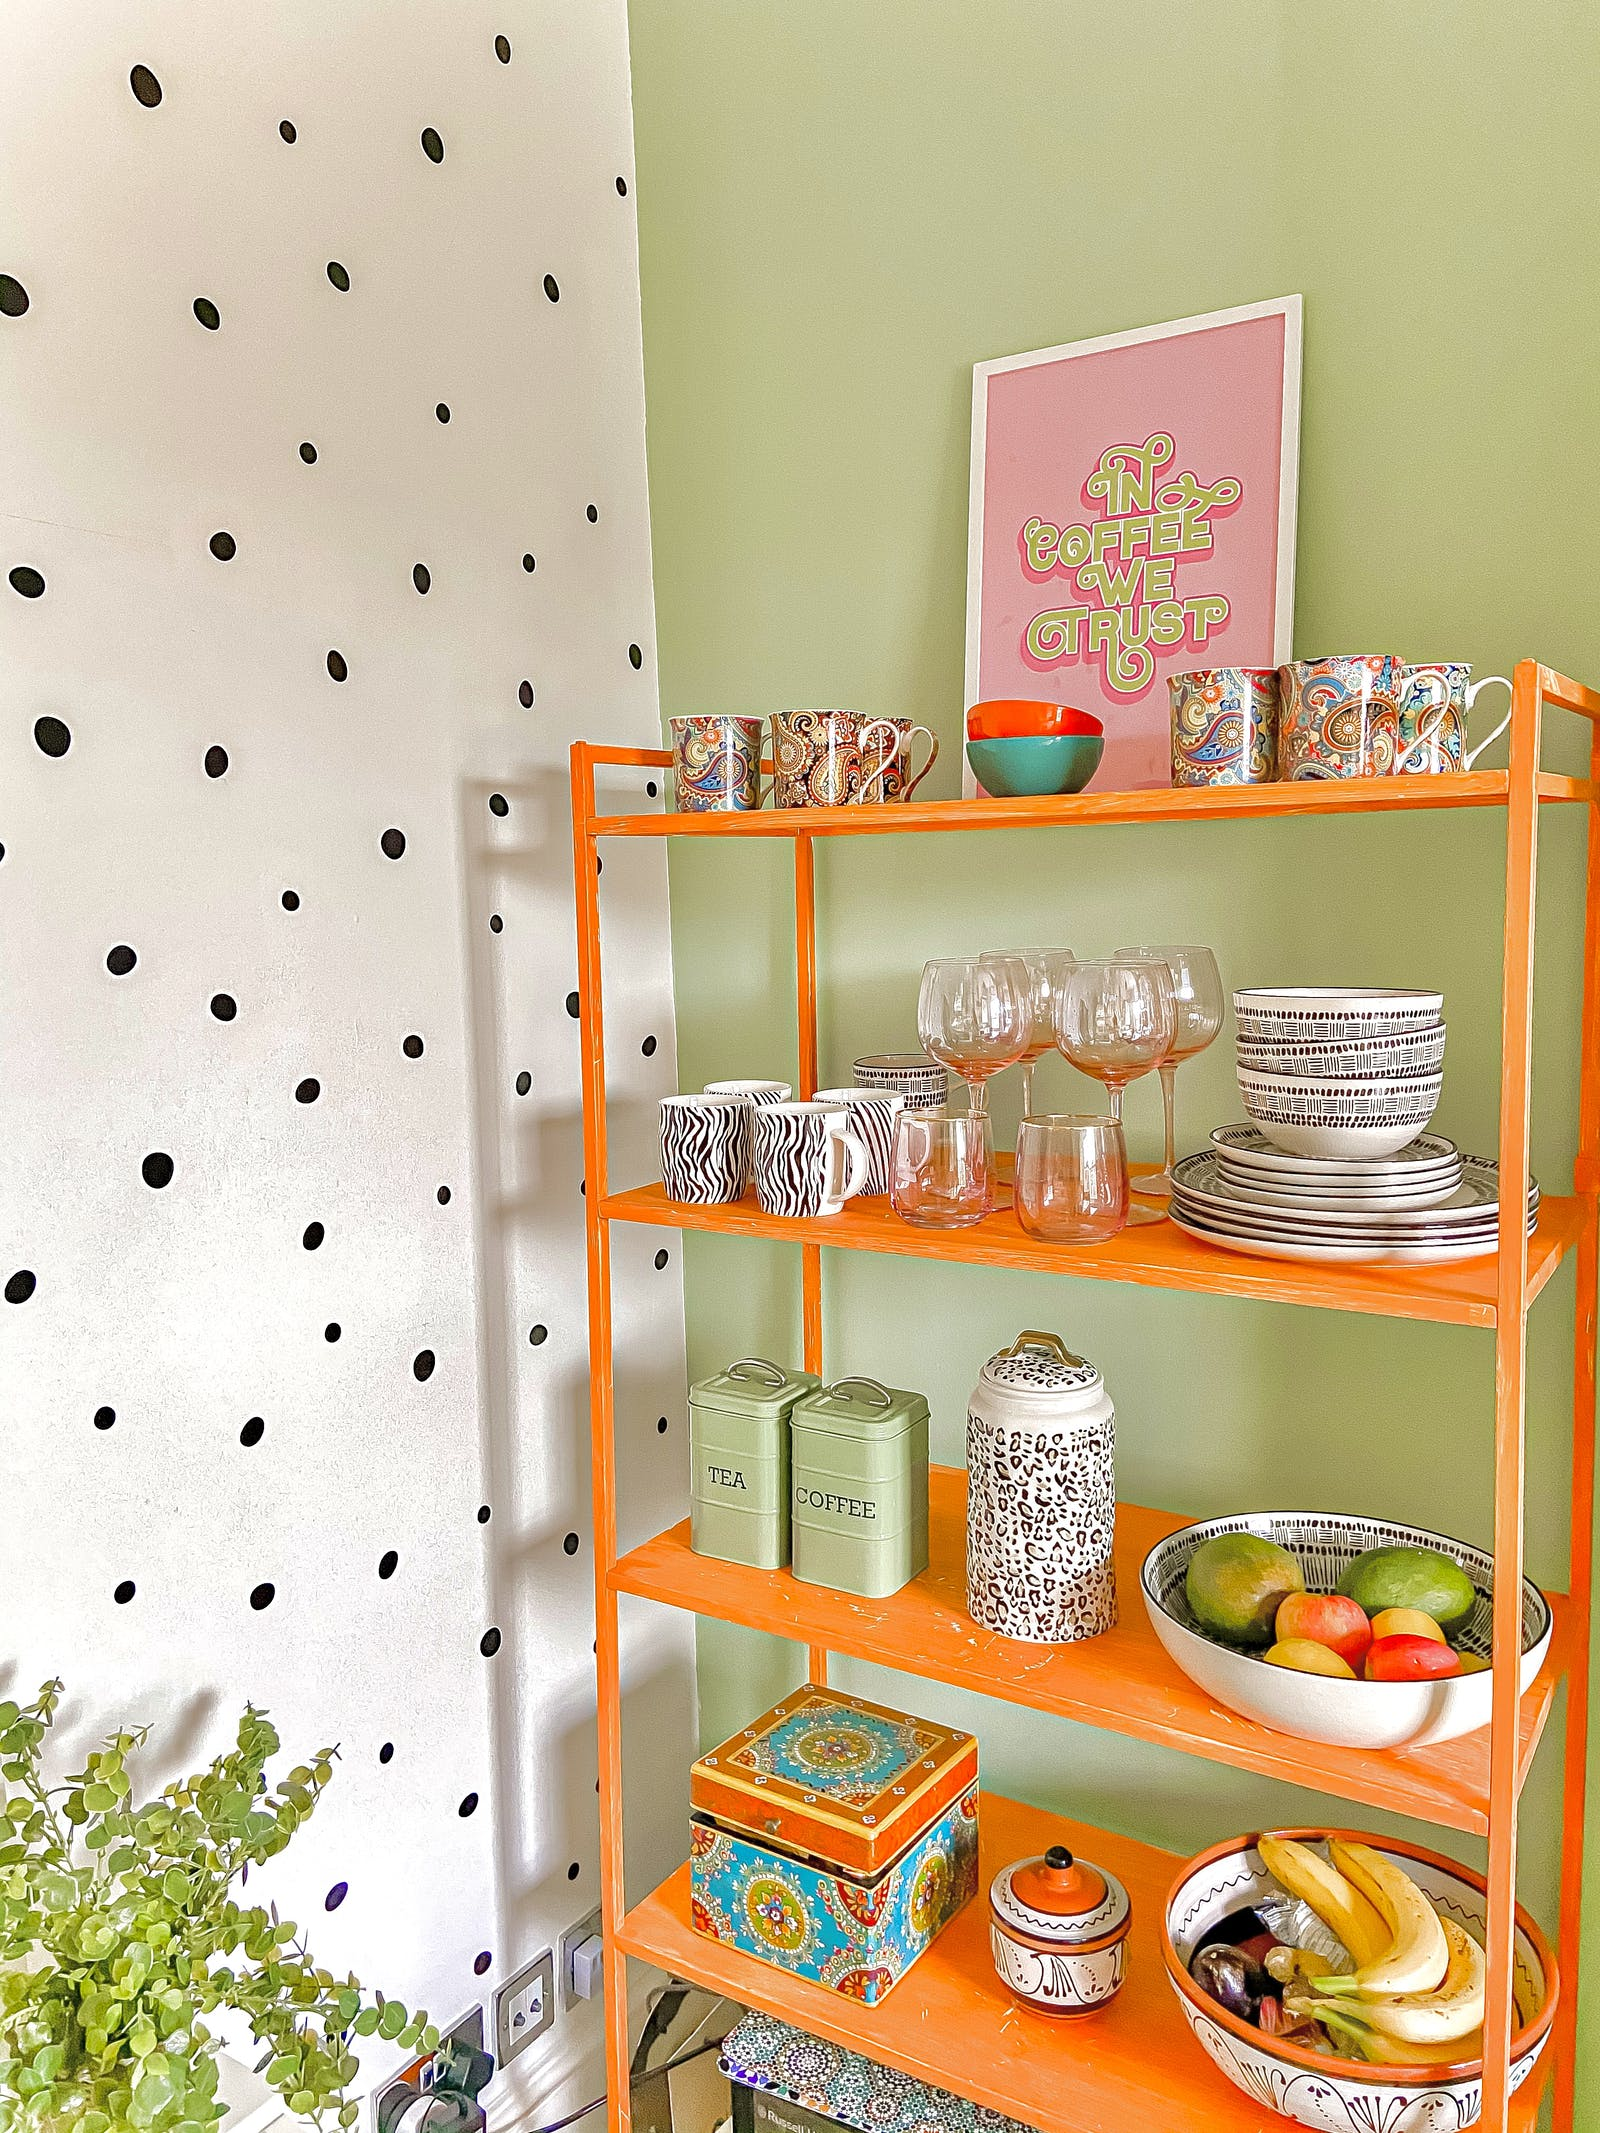 Brightly coloured kitchen with polkadot wallpaper and an orange shelf for plates and glasses